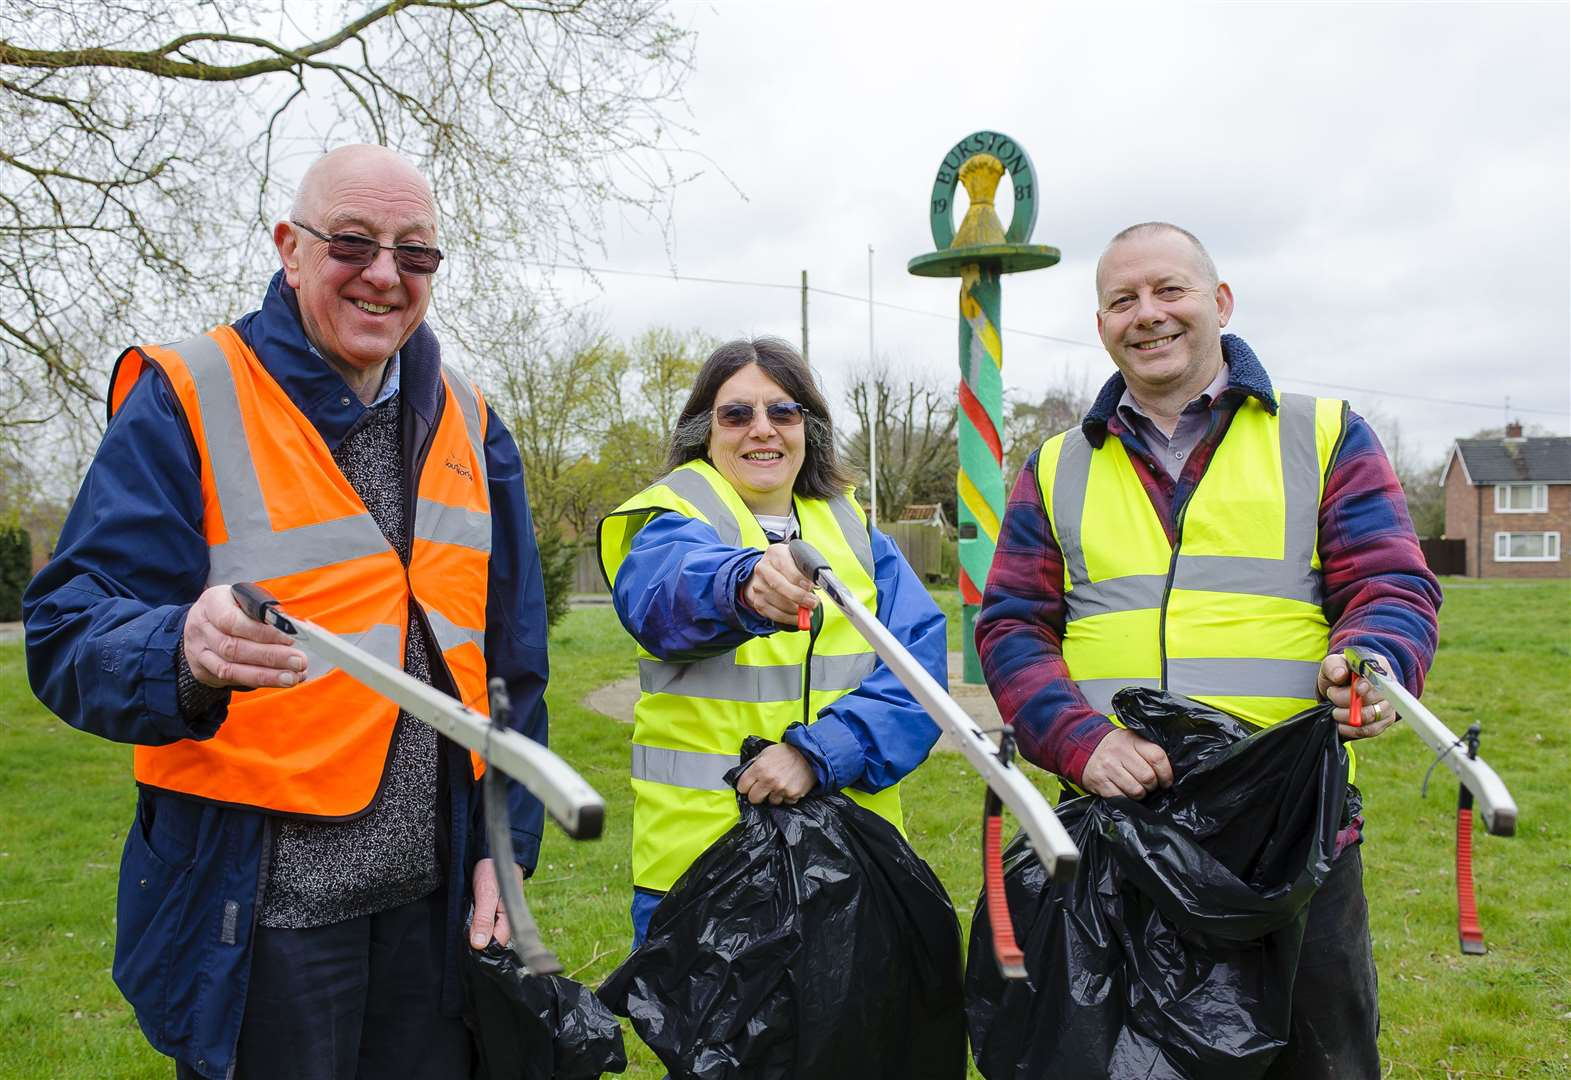 Villagers join forces to clear roads and lanes of litter